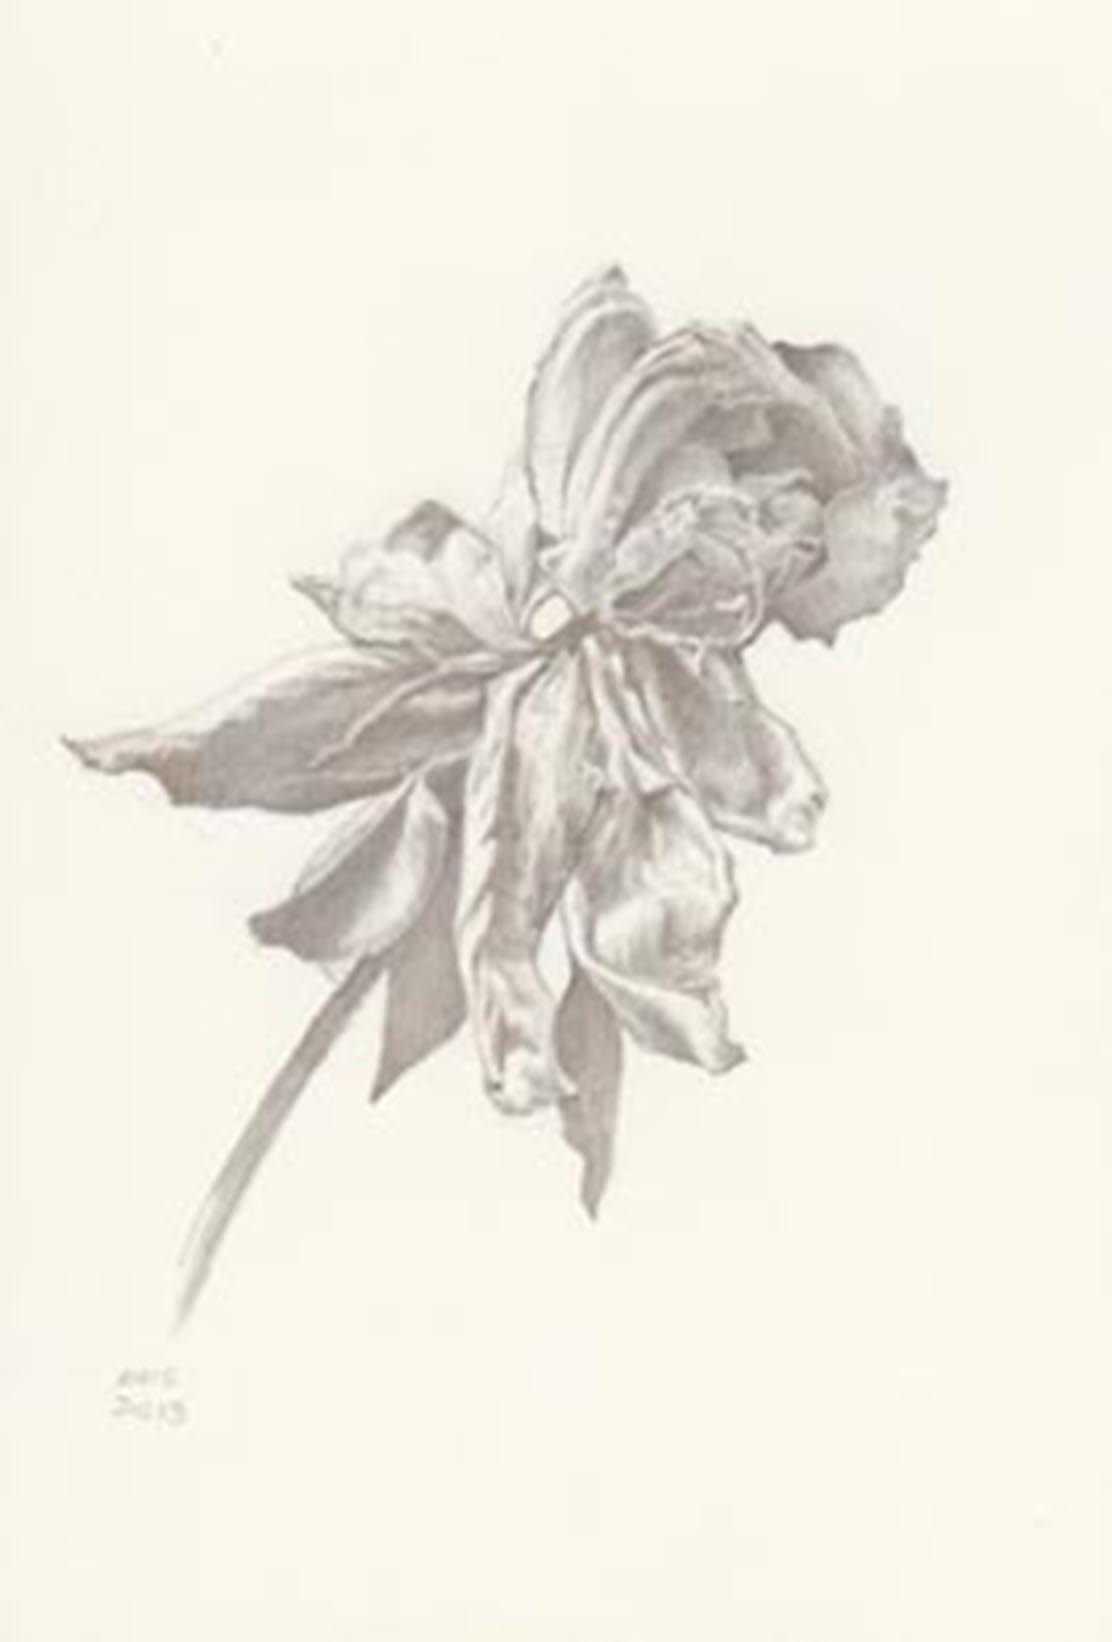 Marjorie Williams-Smith Rose Motion RIght Silverpoint 5 3/8 x 3 15/16